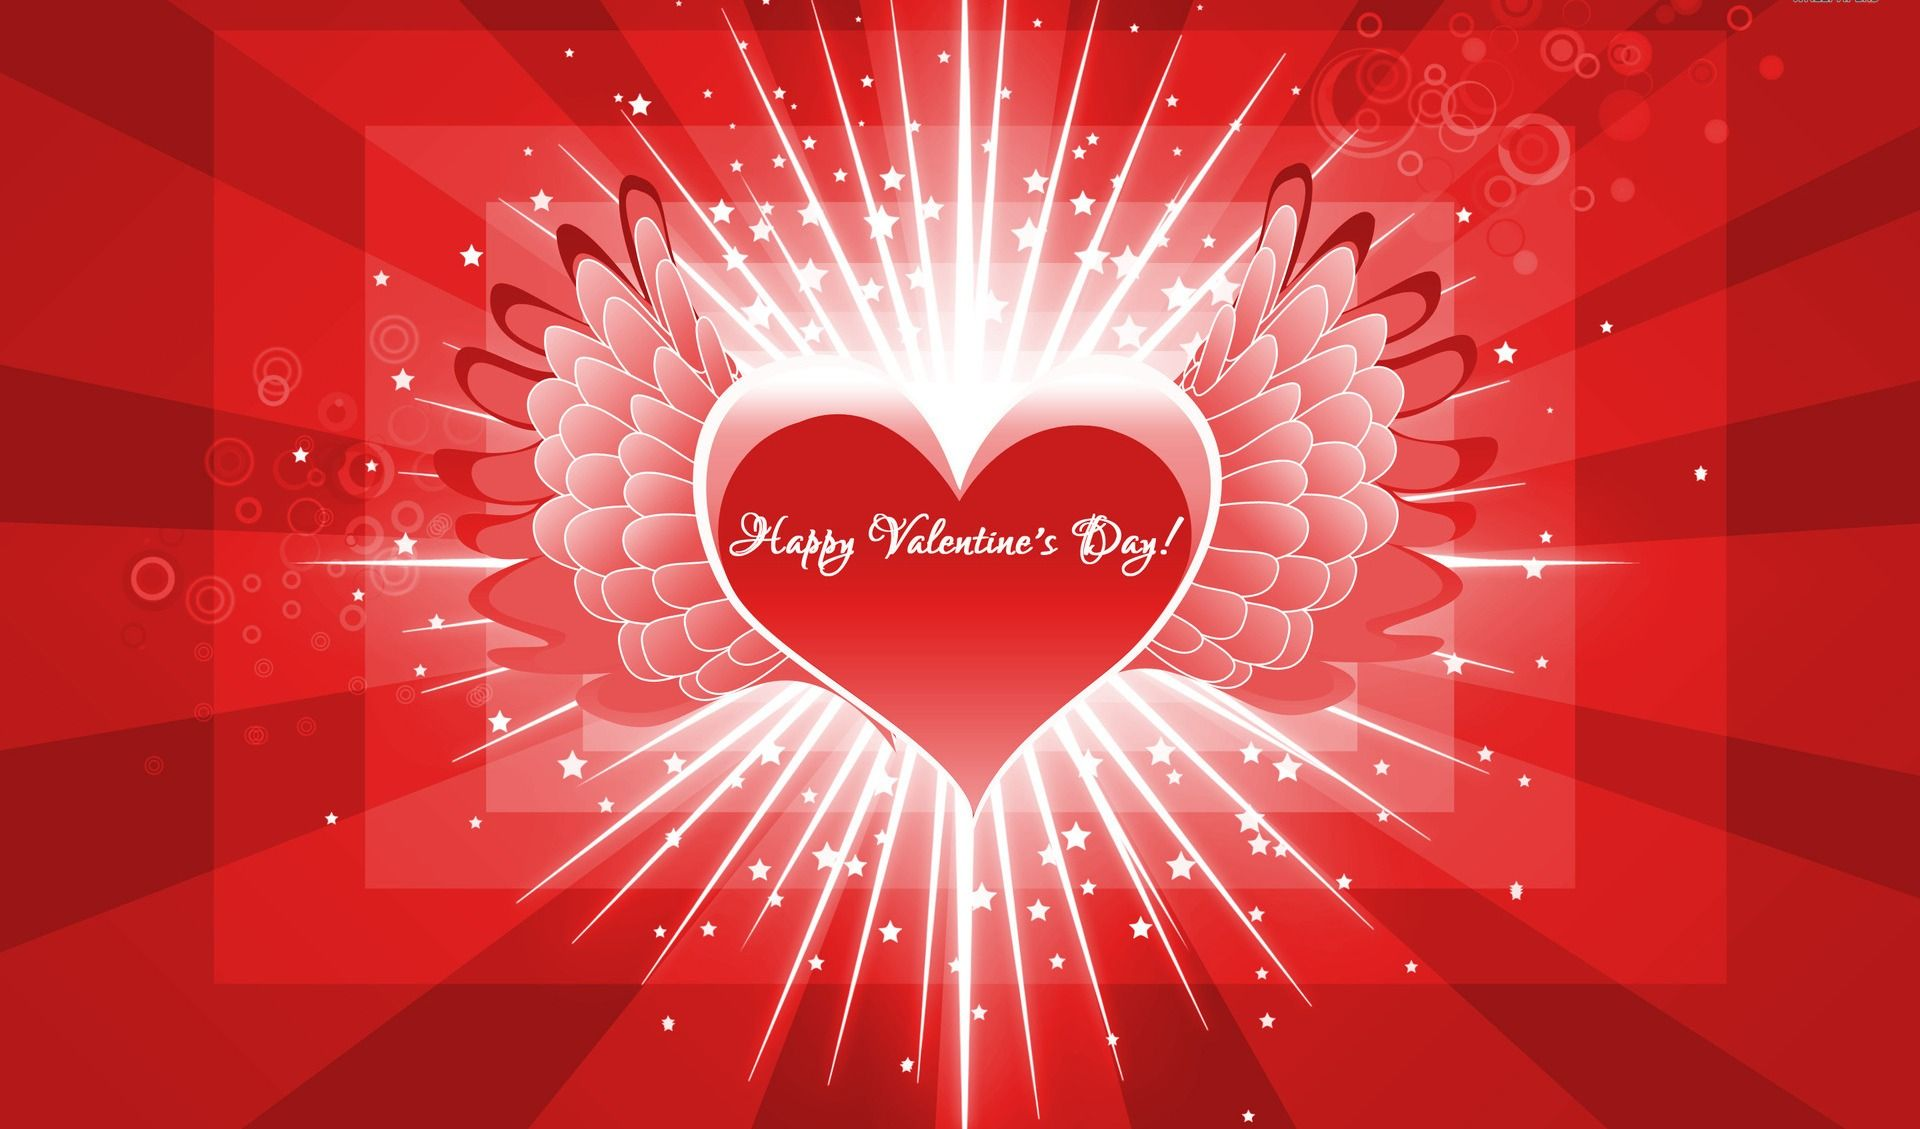 150 Hd Valentine Day Wallpapers For Your Gf Bf Happy Valentines Day Happy Valentines Day Card Happy Valentines Day Images